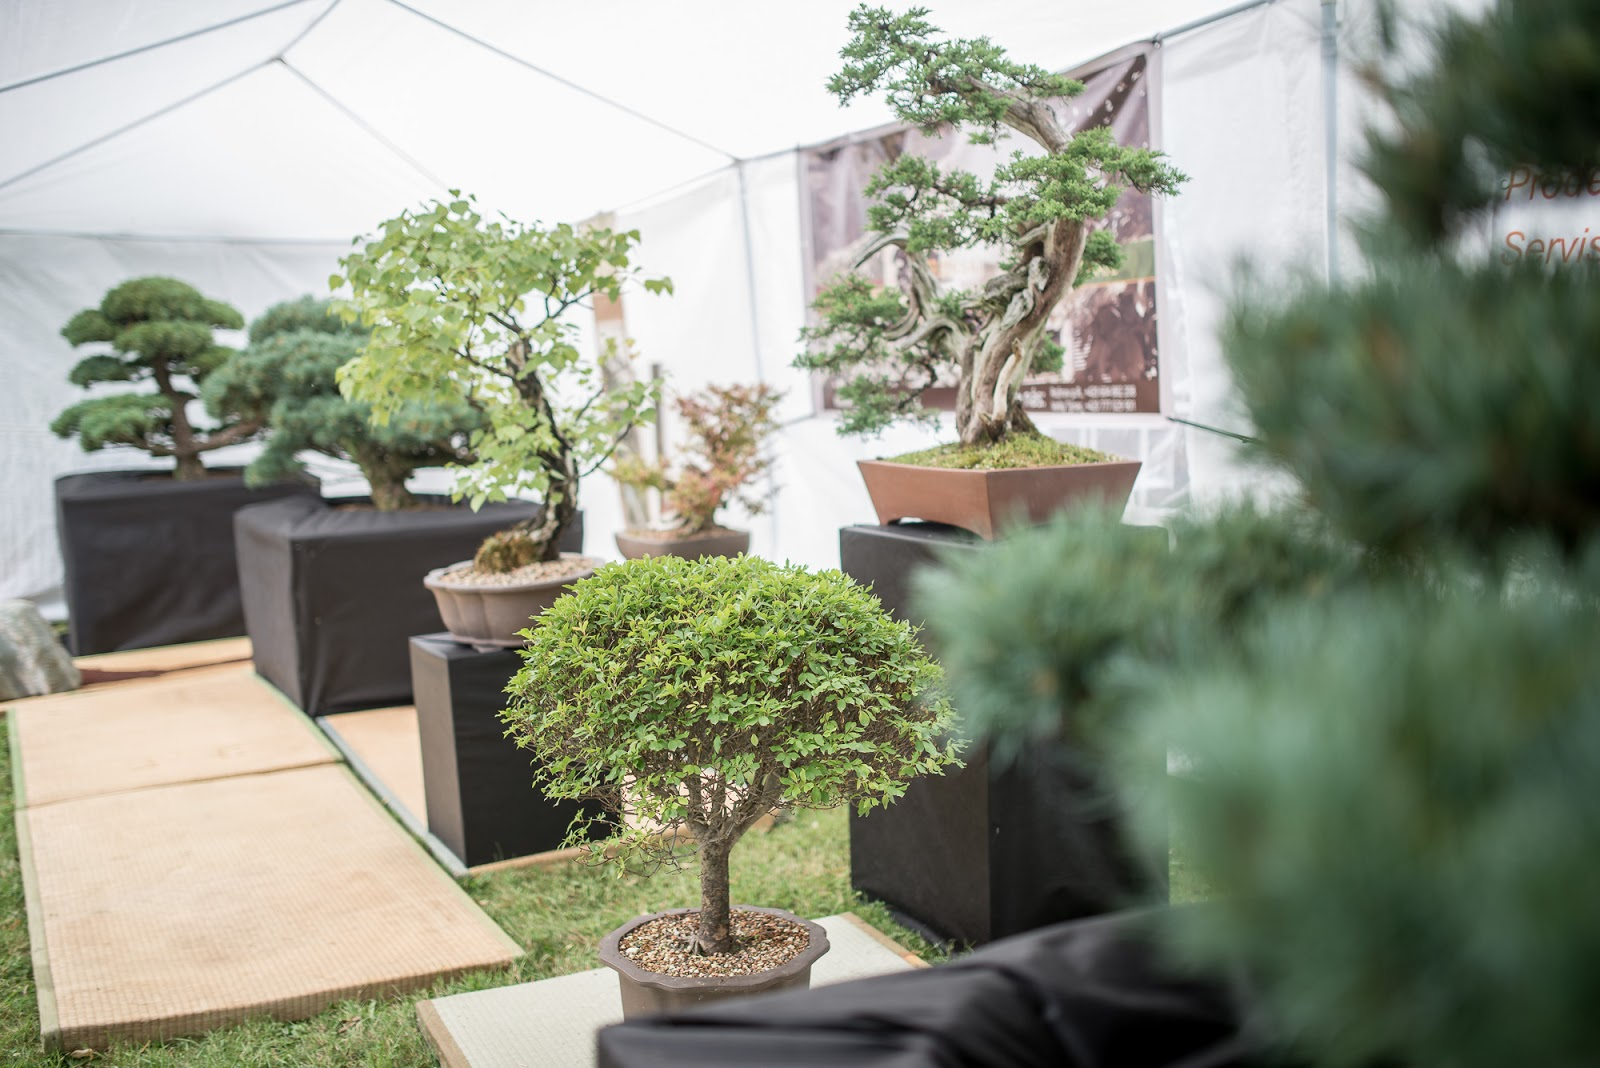 Bonsai Moravia Blog REPORT FROM COLOURS OF OSTRAVA STREET FESTIVAL